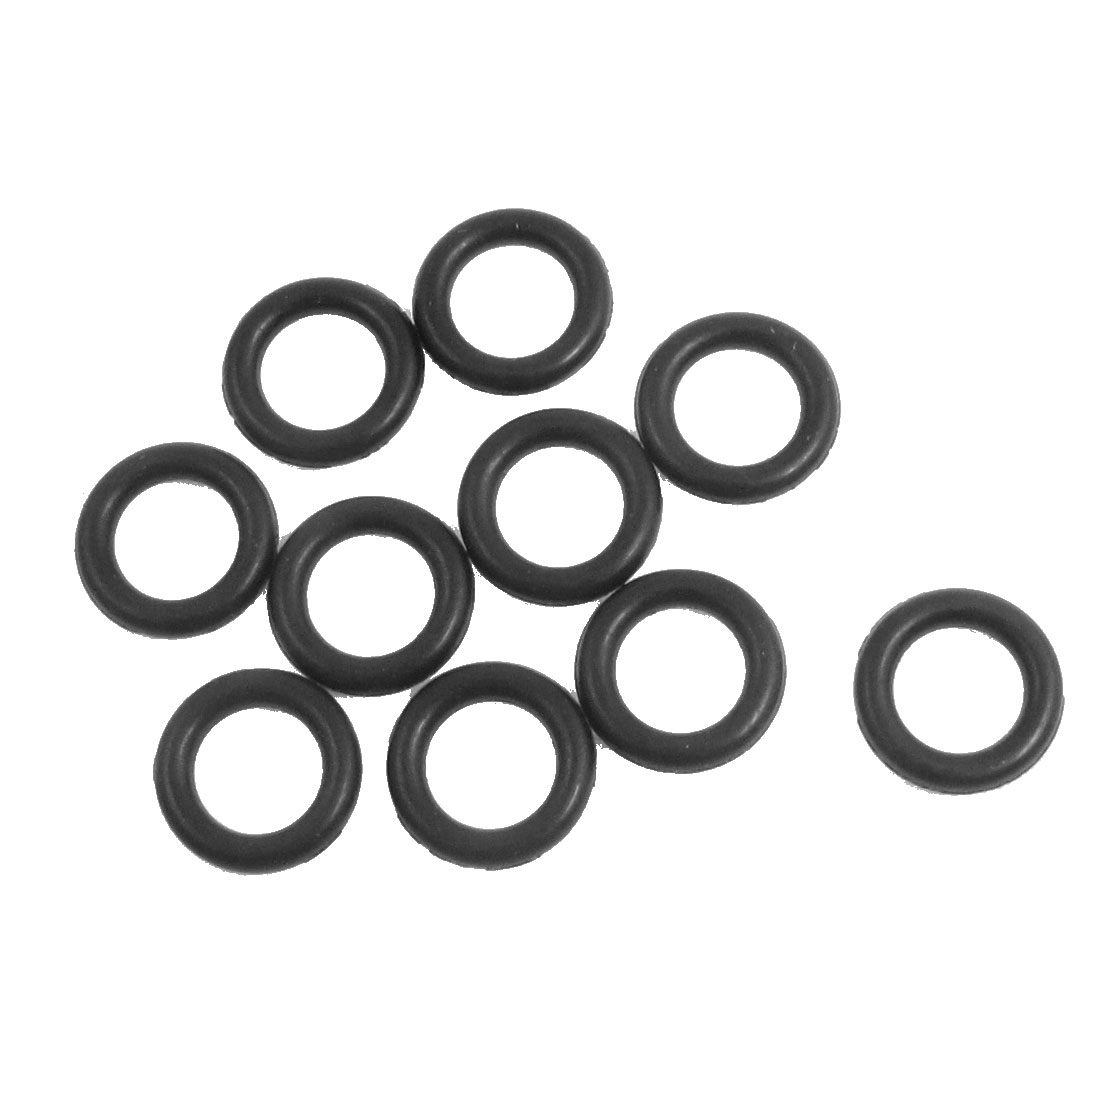 10 Pcs 8.5mm x 2.65mm Black Silicone O Rings Oil Seals Gaskets